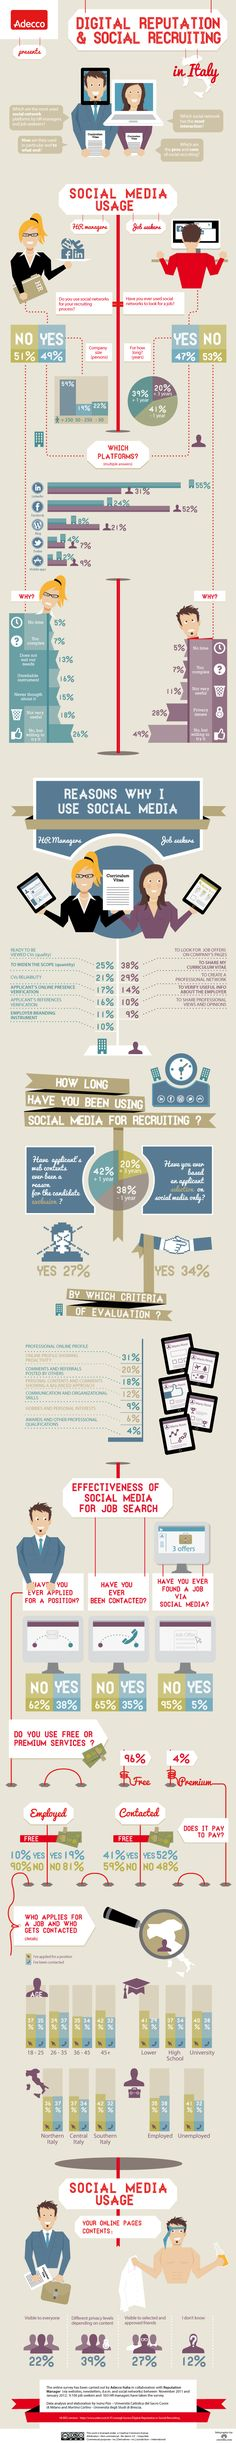 "An info graphic based on the results of an online survey on ""Digital Reputation and Social recruiting in Italy"" taken by 9100 job seekers and 503 HR m  ** Looking for social media advice or support? Contact me at tom.laine@innopinion.com. Read more about me at https://www.linkedin.com/in/tomlaine"